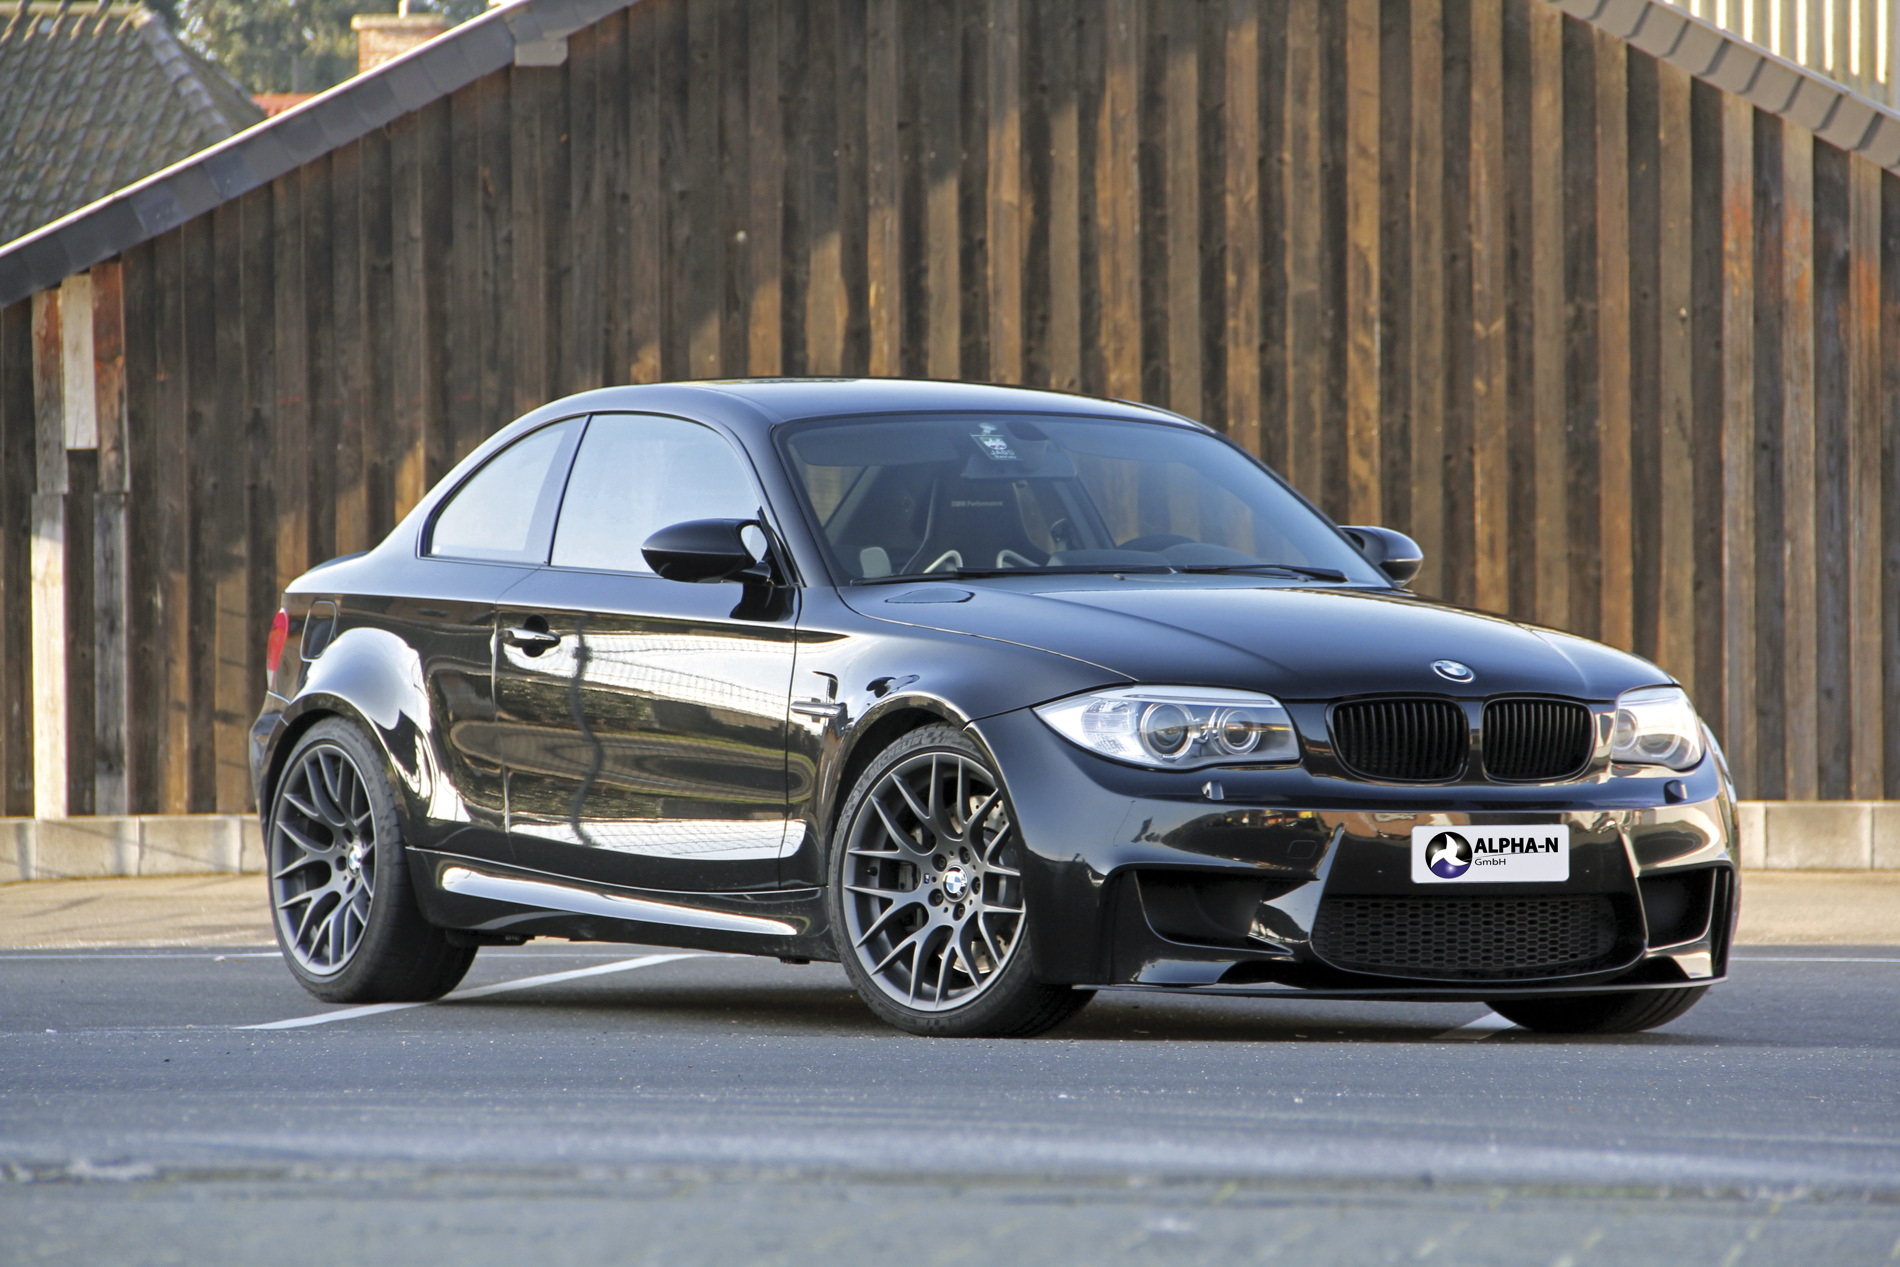 Alpha N Performance 564 hp BMW 1 Series M Coupe1